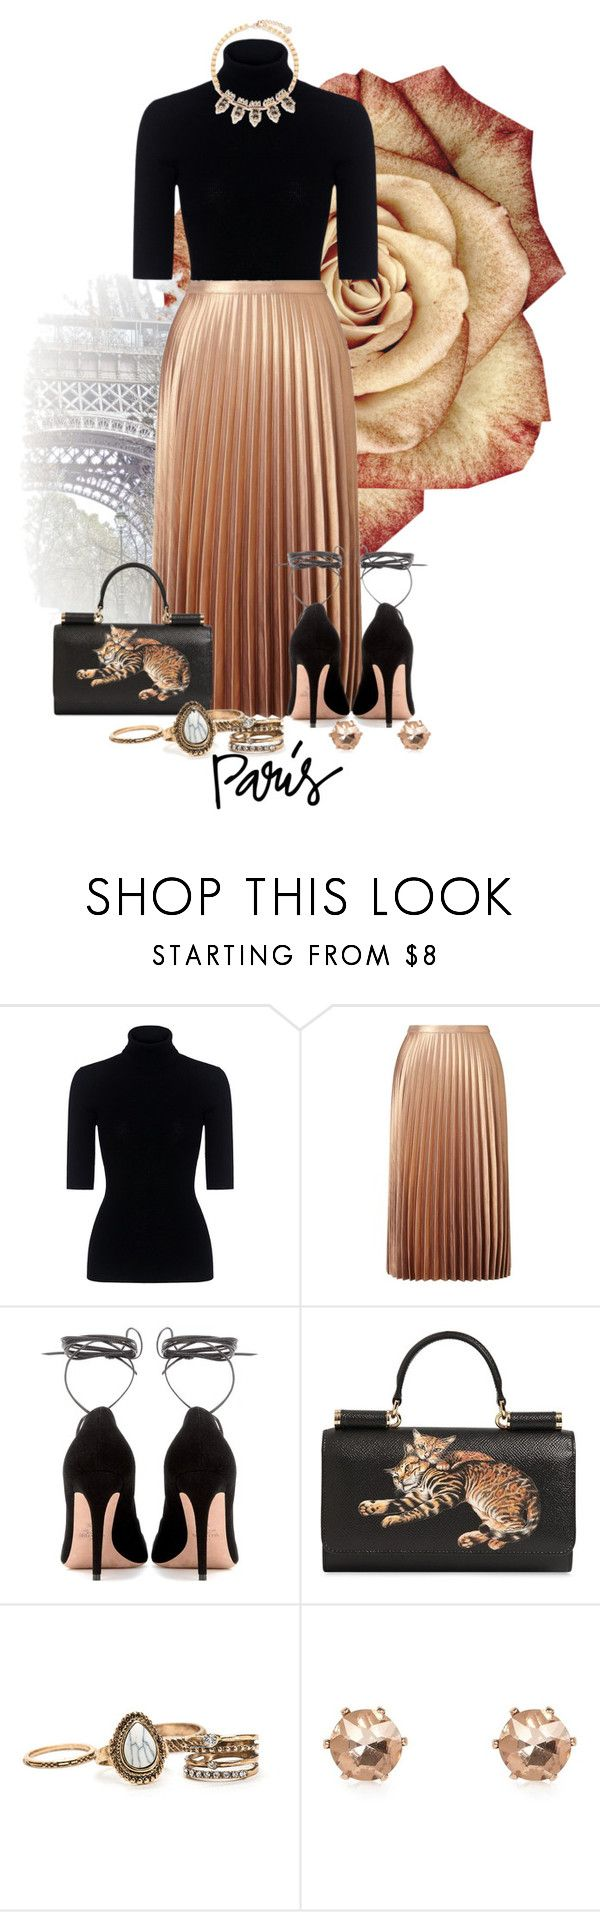 """""""Elle"""" by calvinrogers96 ❤ liked on Polyvore featuring Theory, Miss Selfridge, Valentino, Dolce&Gabbana, River Island and Anton Heunis"""